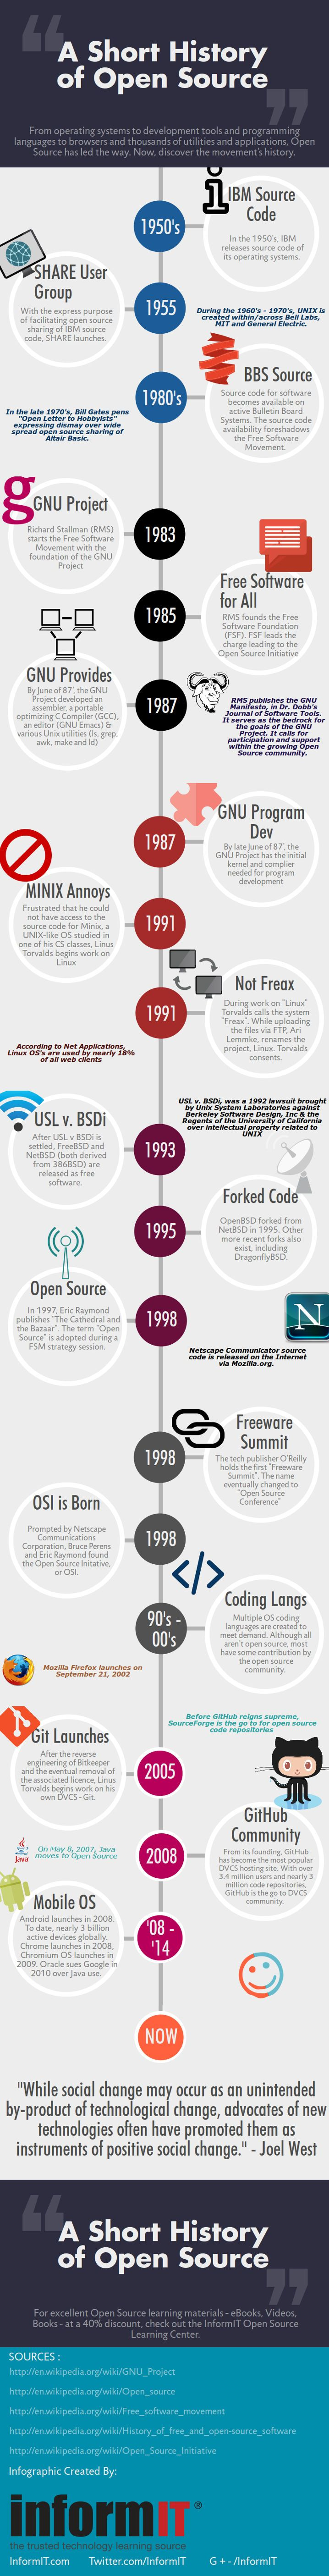 Breve Historia del Open Source / Short History of Open Source #infographic